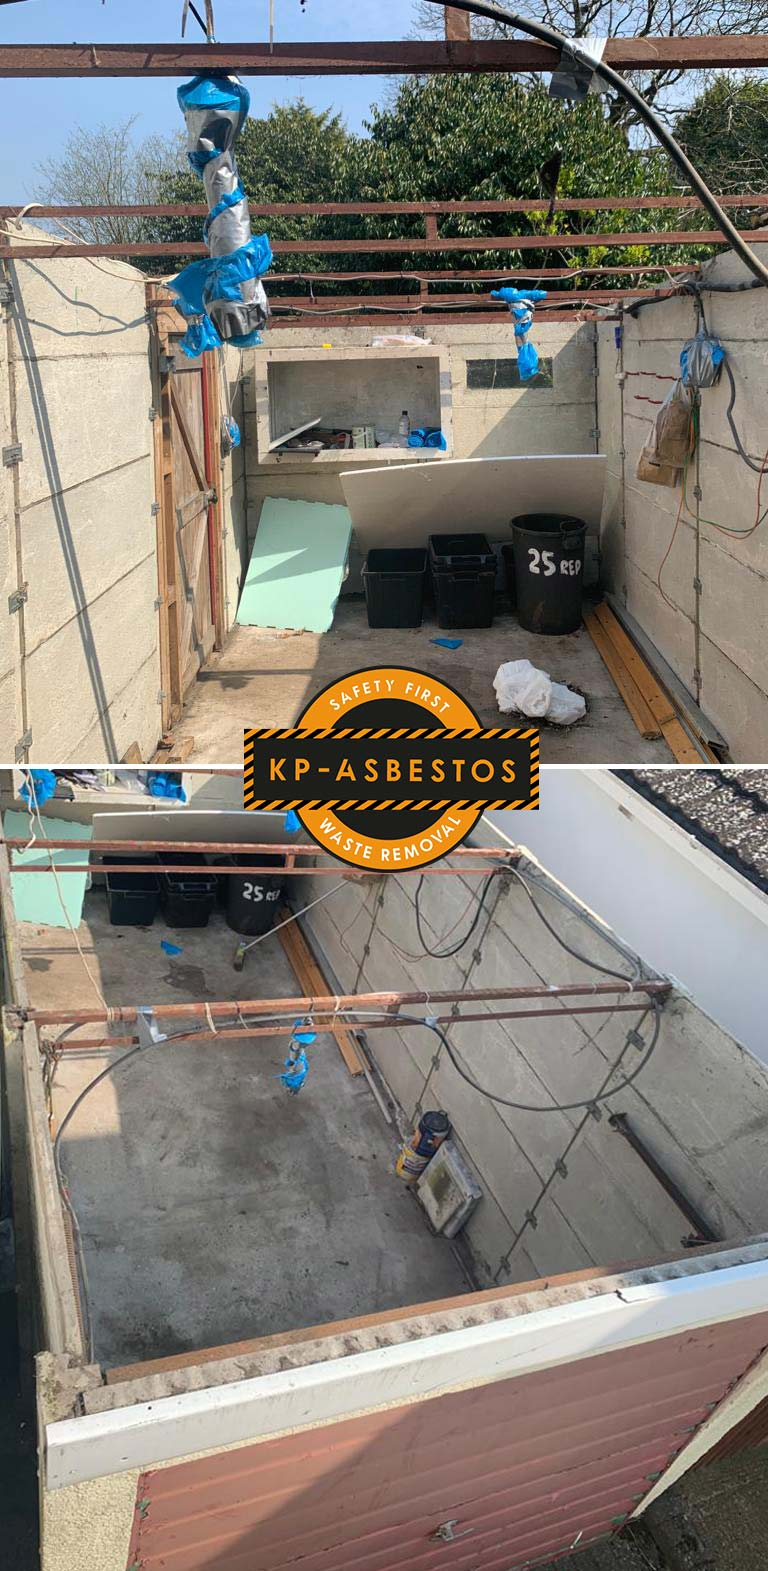 Asbestos removal cost - the real cost